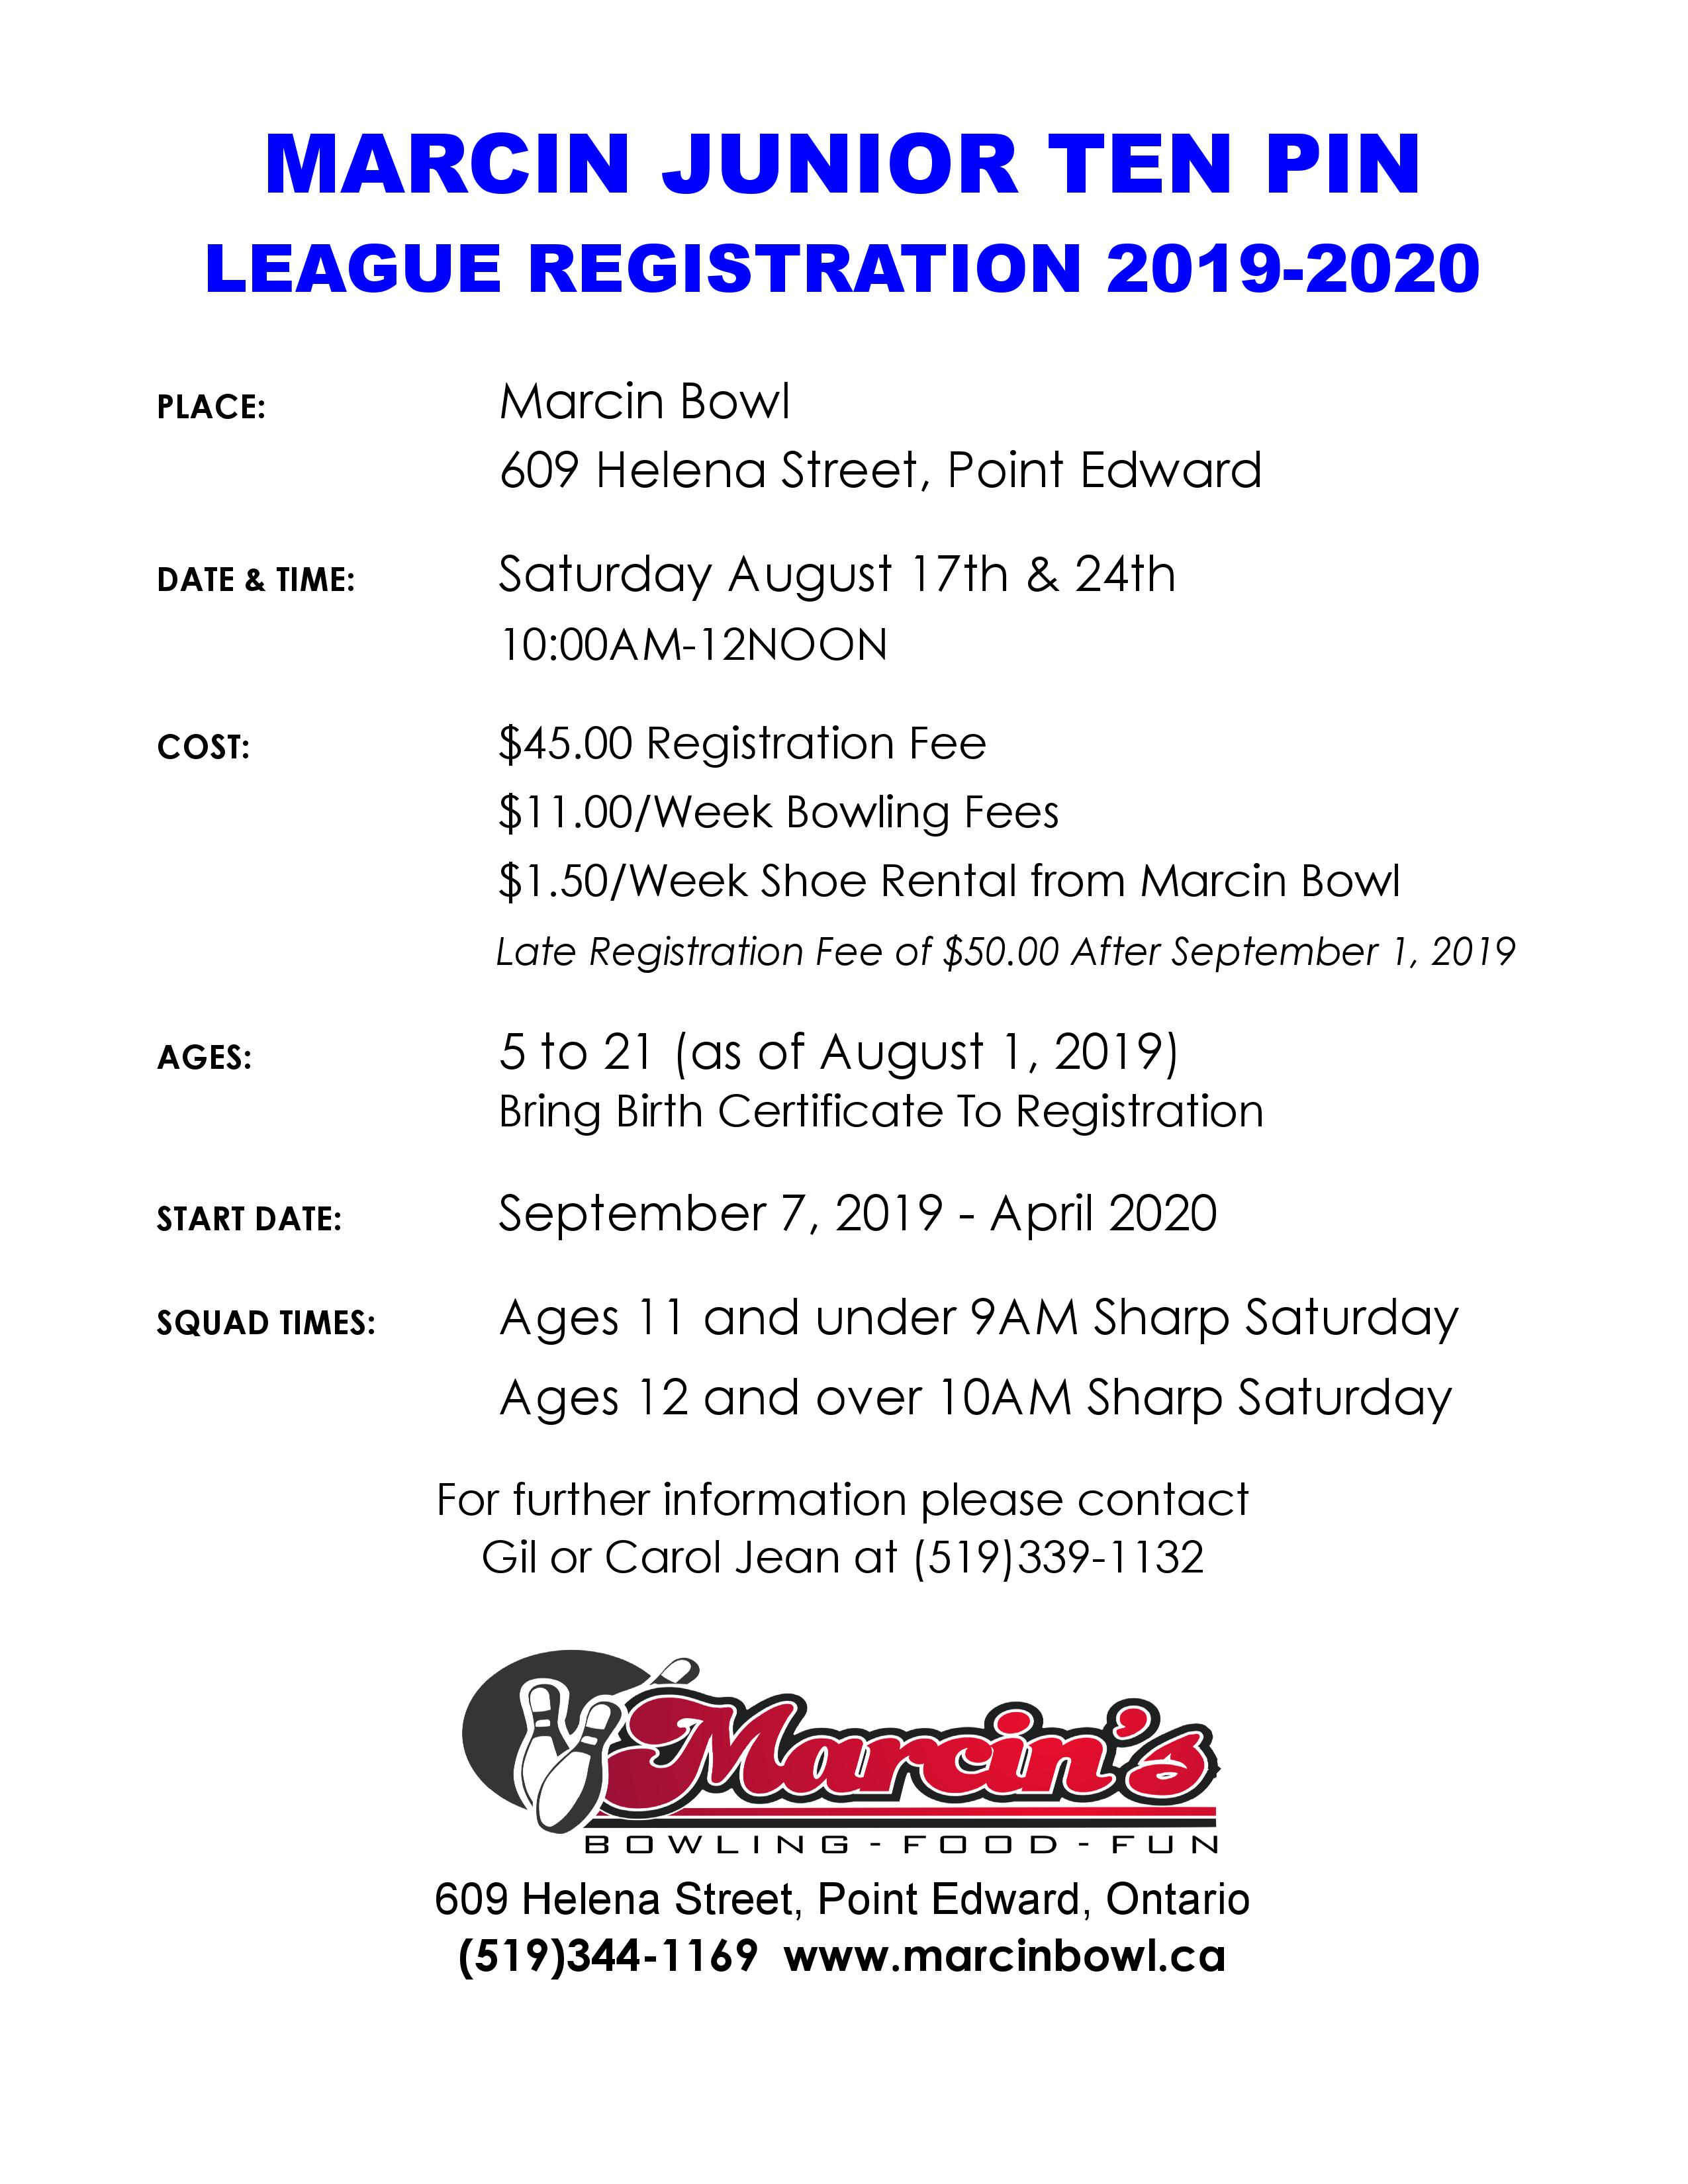 PLACE: Marcin Bowl 609 Helena Street, Point Edward DATE & TIME: Saturday August 17th & 24th 10:00AM-12NOON COST: $45.00 Registration Fee $11.00/Week Bowling Fees $1.50/Week Shoe Rental from Marcin Bowl Late Registration Fee of $50.00 After September 1, 2019 AGES: 5 to 21 (as of August 1, 2019) Bring Birth Certificate To Registration START DATE: September 7, 2019 - April 2020 SQUAD TIMES: Ages 11 and under 9AM Sharp Saturday Ages 12 and over 10AM Sharp Saturday 609 Helena Street, Point Edward, Ontario For further information please contact Gil or Carol Jean at (519)339-1132